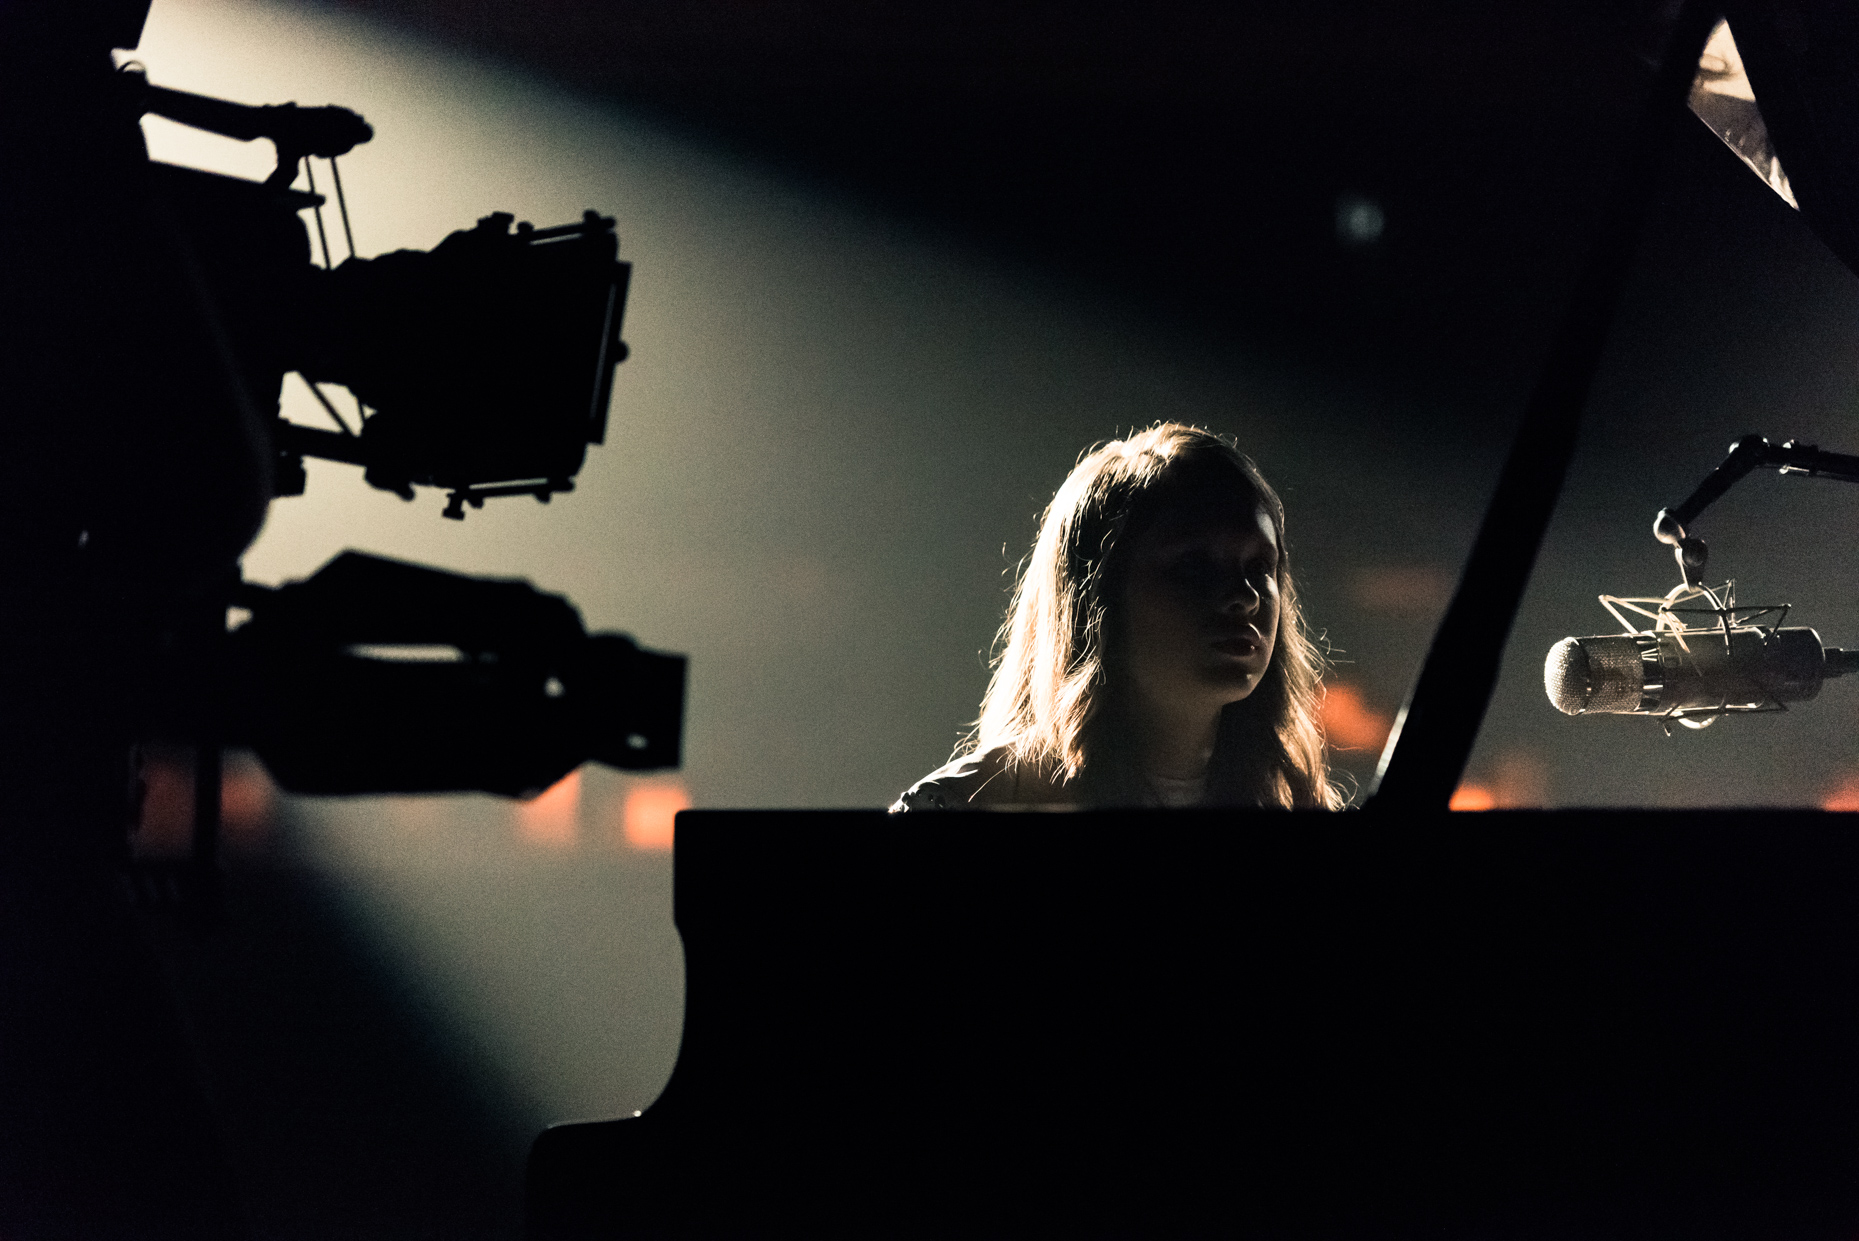 Commercial-Austin-Music-Photographers-Madison-Mcwilliams-Behind-the-Scenes-Video-Camera-Piano-Performance